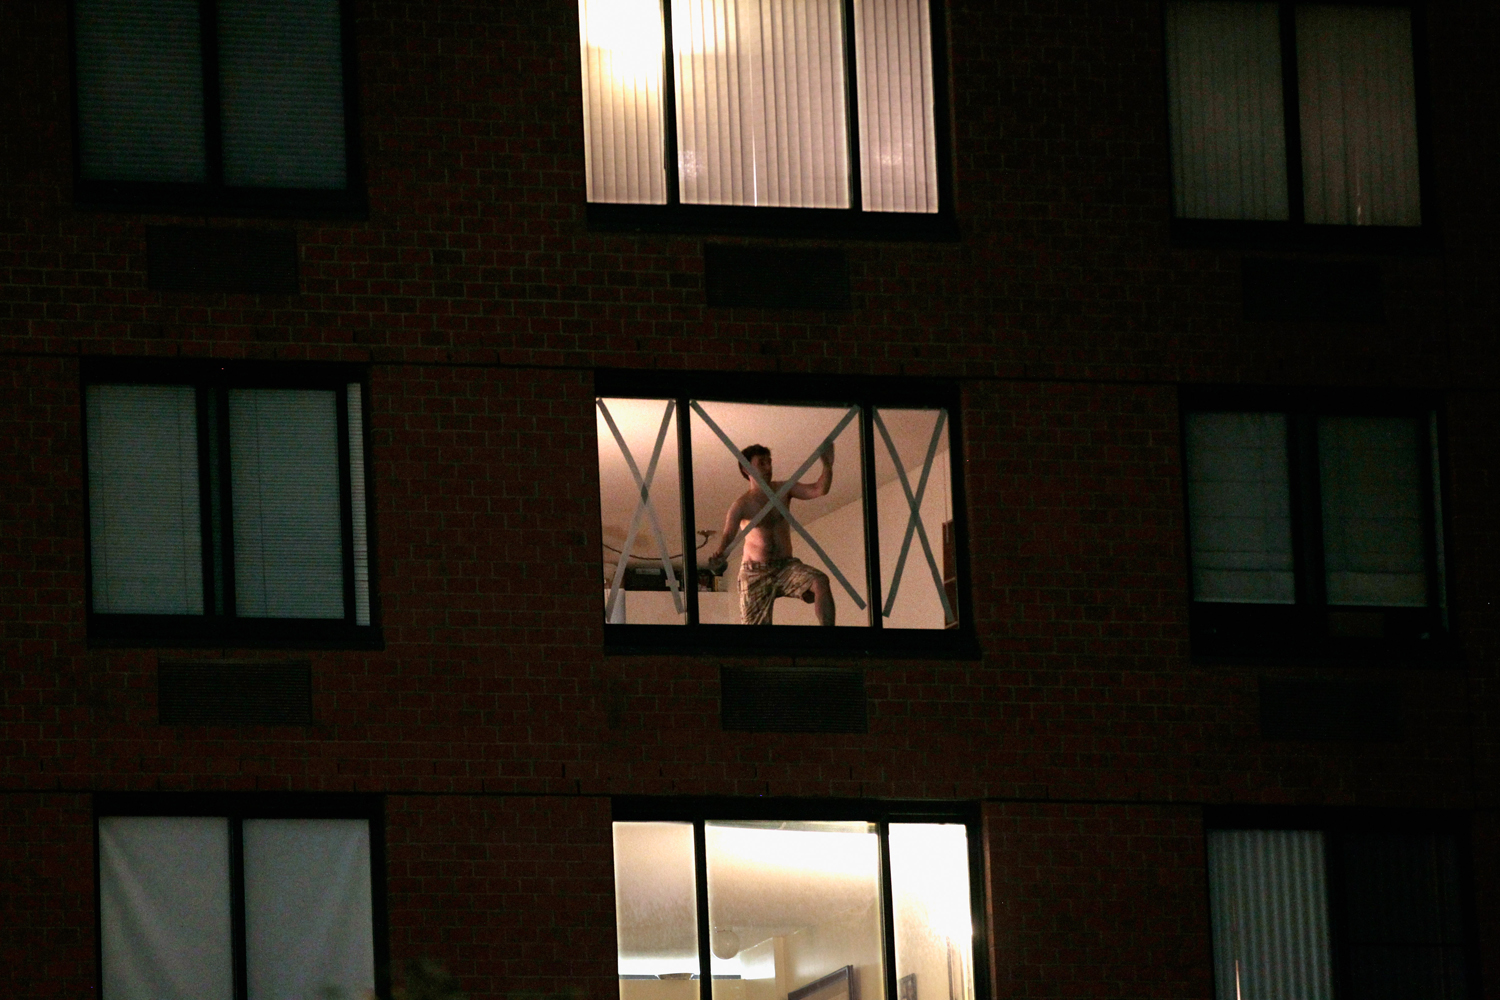 August 26, 2011, New York, NY.  A man in a Battery Park City high rise tapes his windows ahead of the arrival of Hurricane Irene. New York City Mayor Michael Bloomberg had ordered a mandatory evacuation of 250,000 residents of low-lying areas at the city's edges, including the World Financial Center.